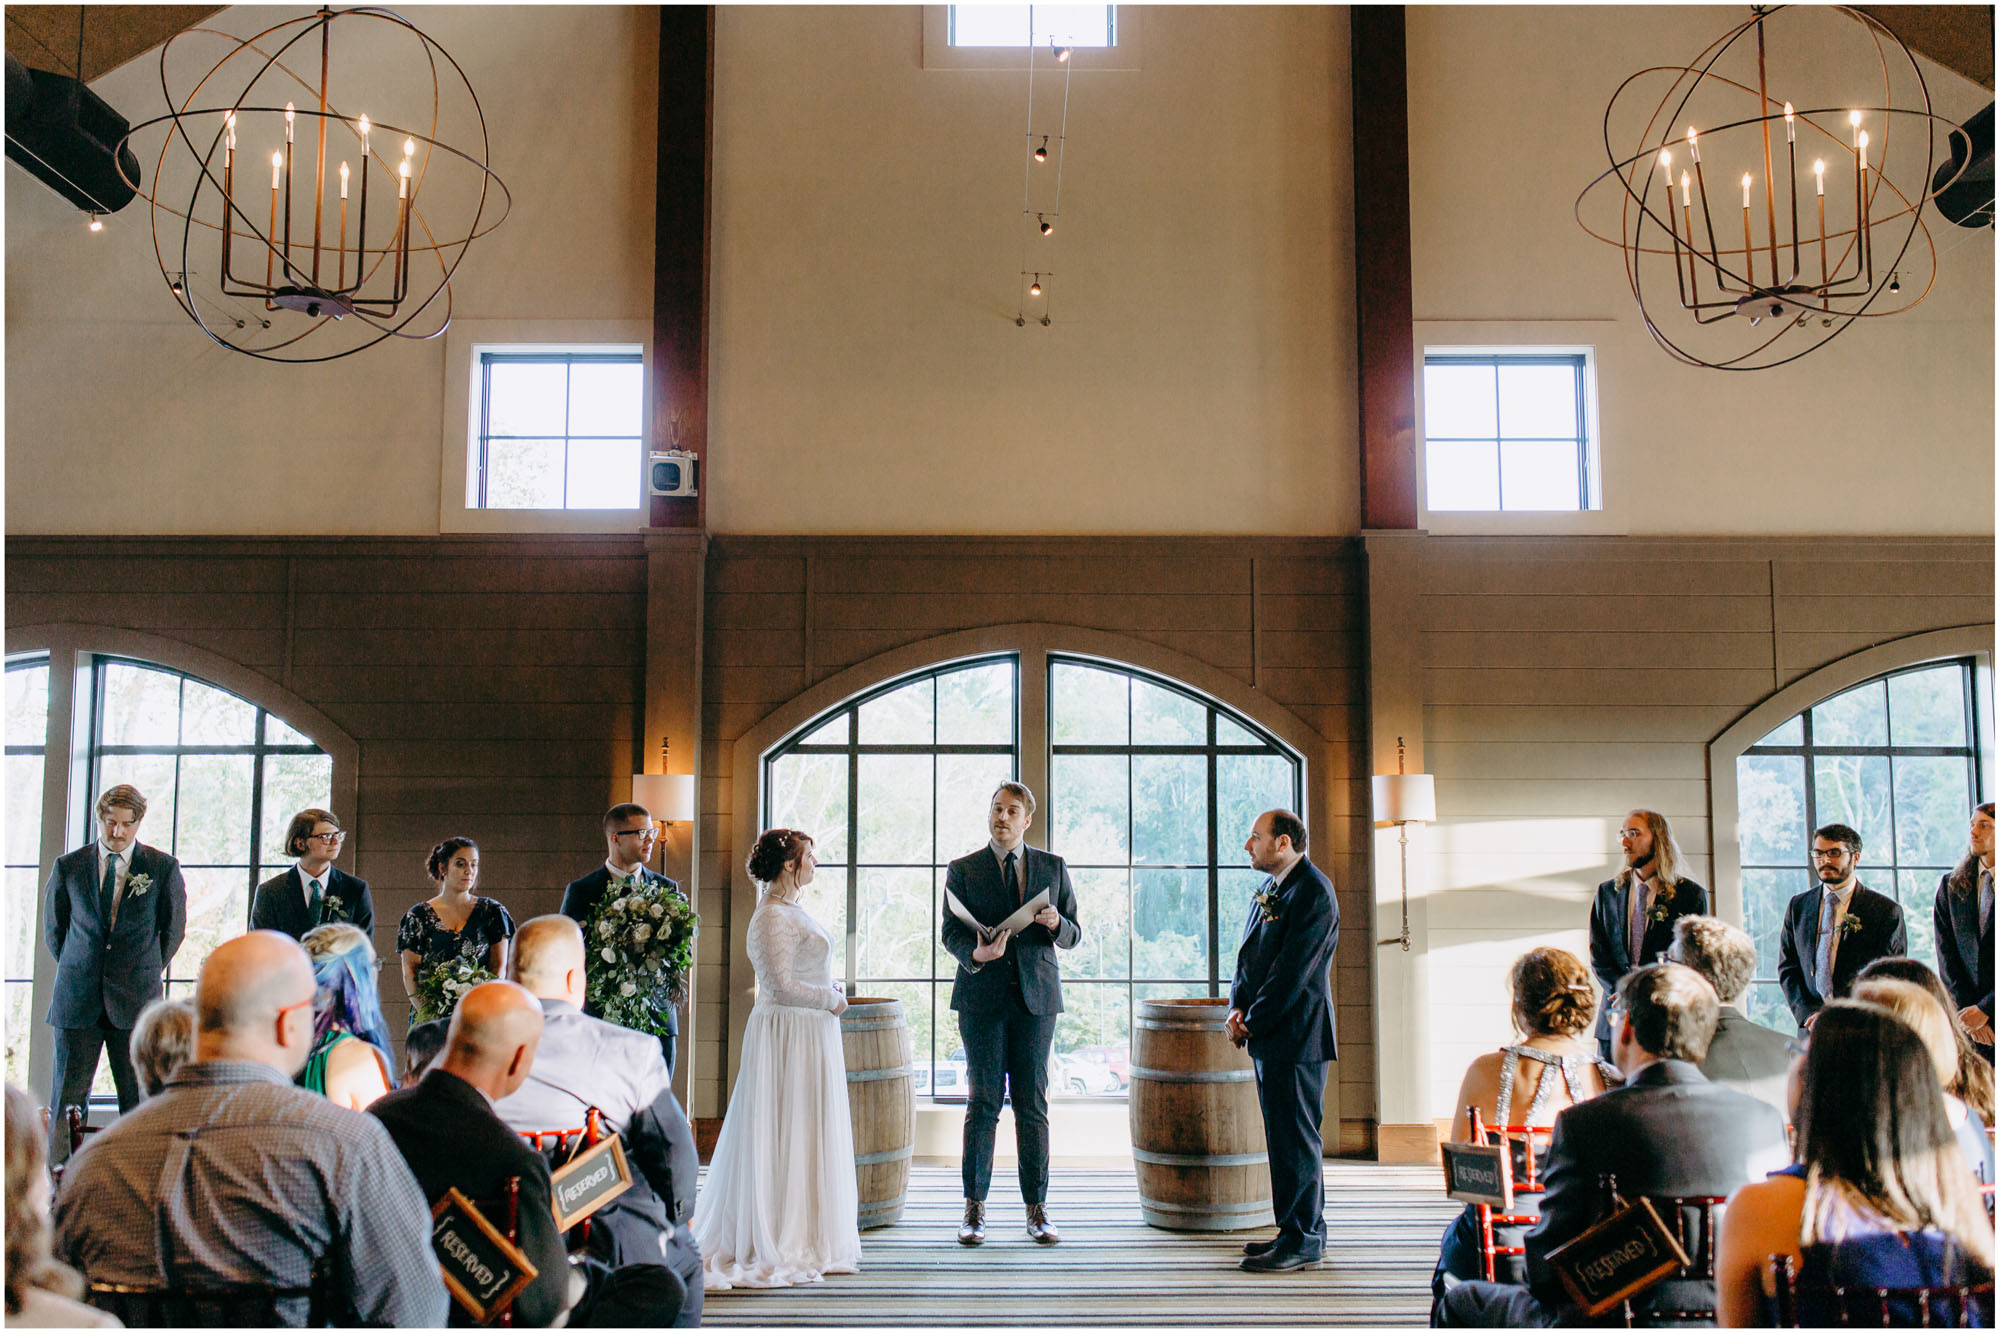 Bright ceremony venue - by Ashleigh Laureen Photography at LaBelle Winery in Amherst, New Hampshire